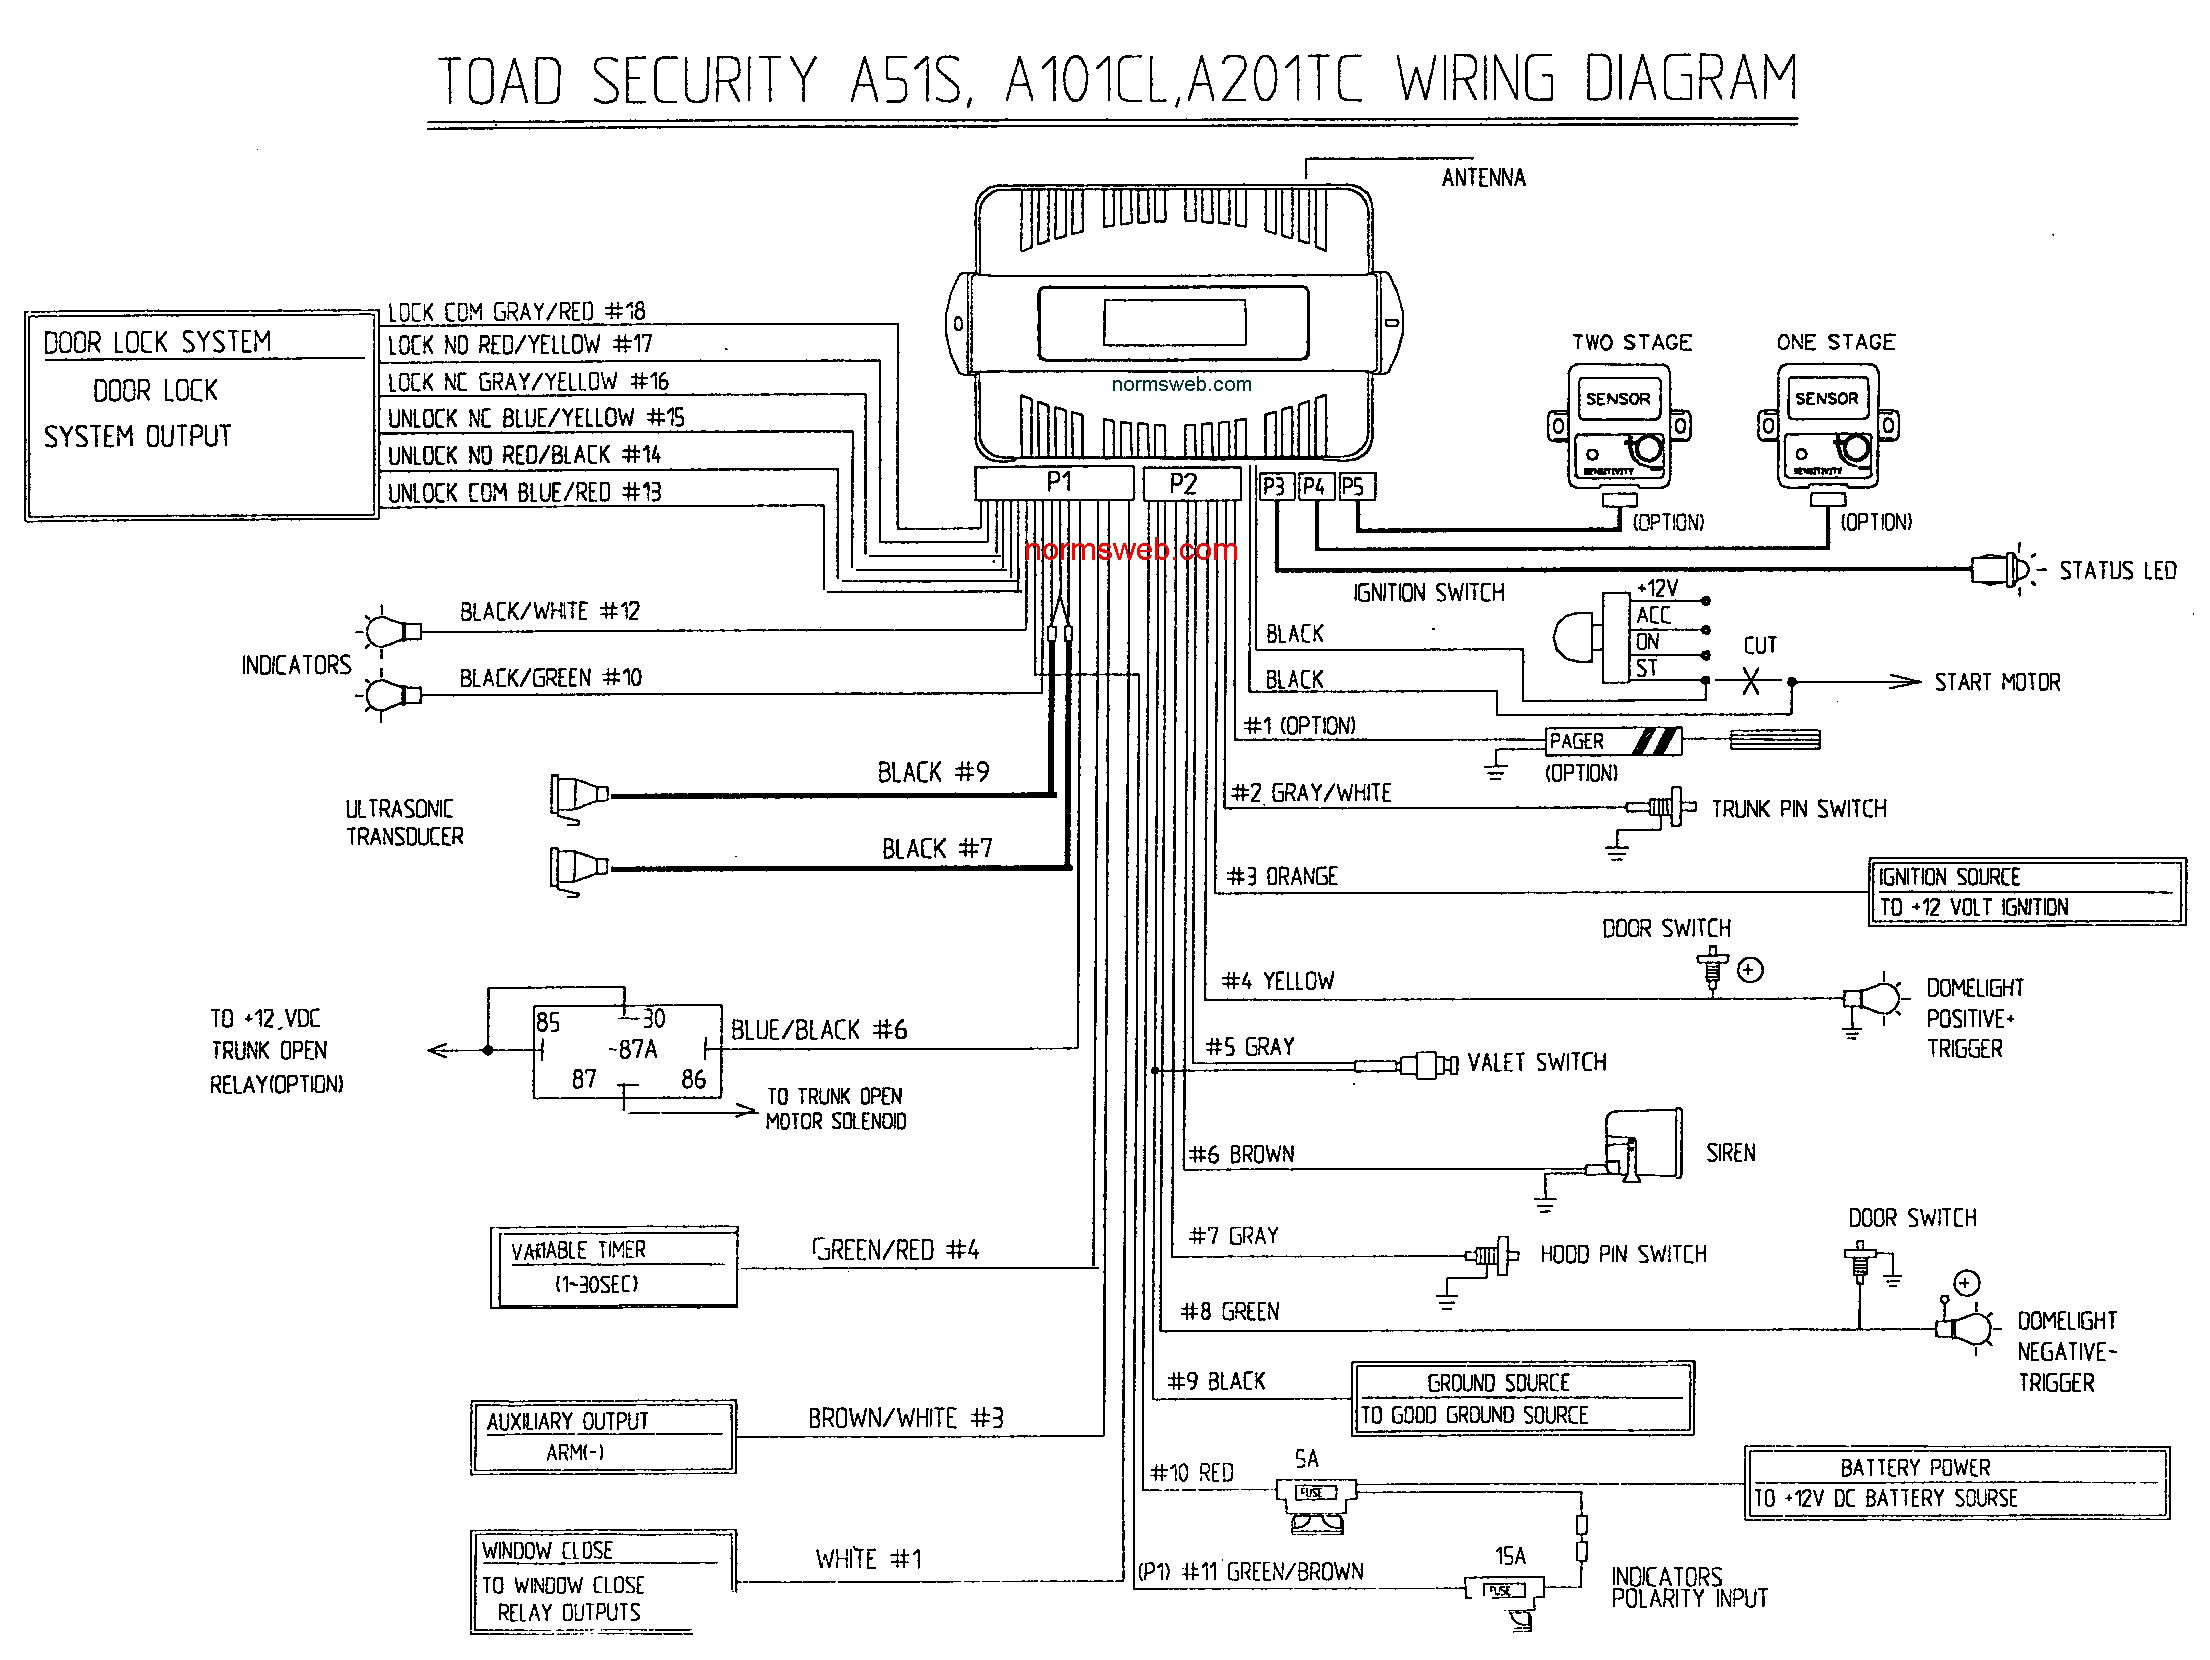 [DIAGRAM_38IU]  ☑ 556u Viper Alarm Cables Diagram HD Quality ☑ timeline.twirlinglucca.it | Viper 5701 Wiring Diagram 2008 Subaru |  | Diagram Database - Twirlinglucca.it